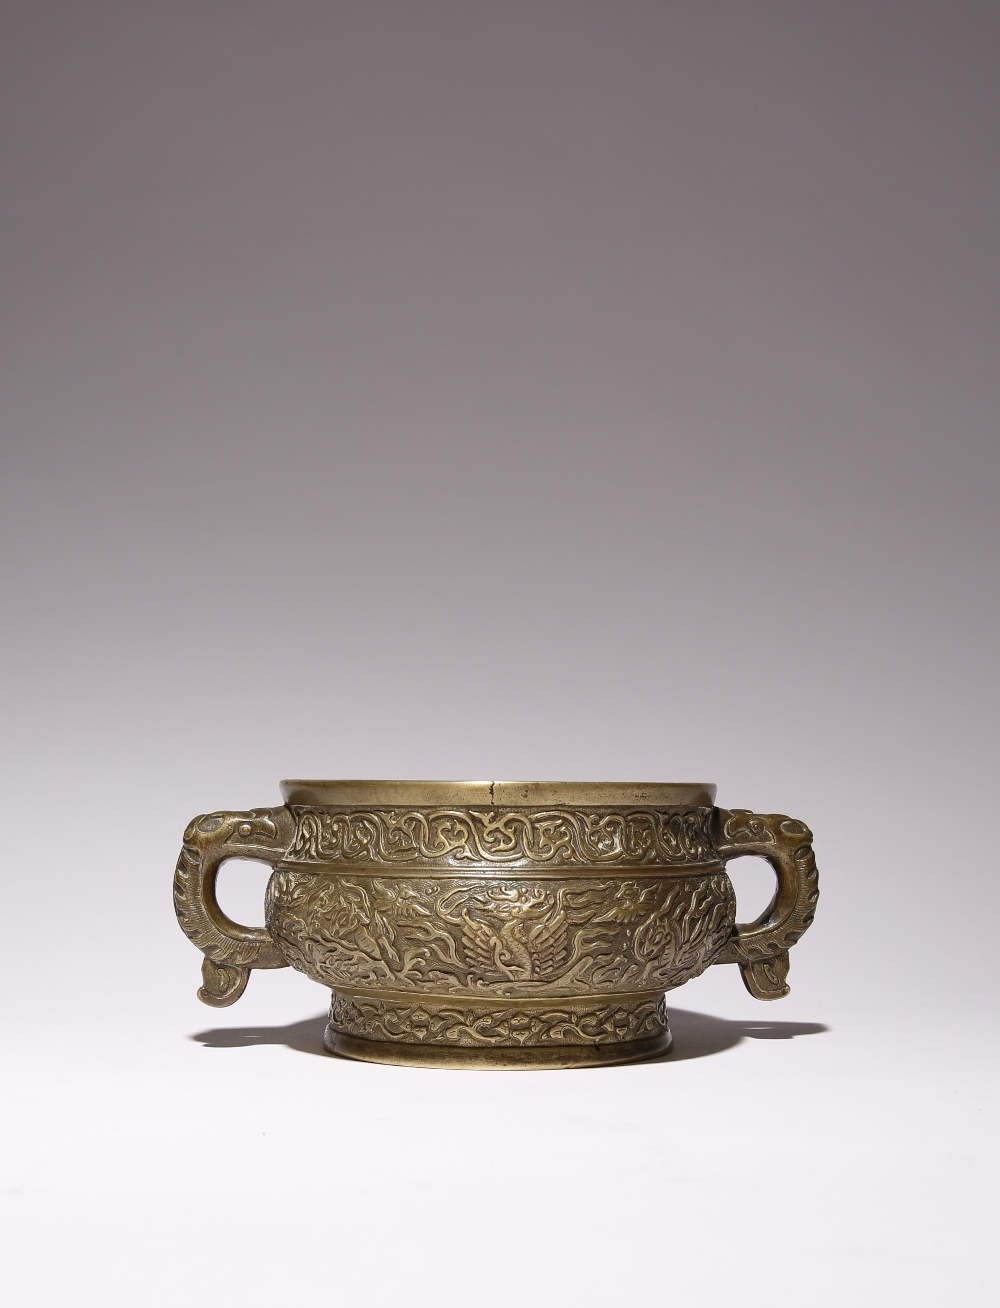 A CHINESE BRONZE 'MYTHICAL BEASTS' INCENSE BURNER 17TH/18TH CENTURY Decorated in relief with a